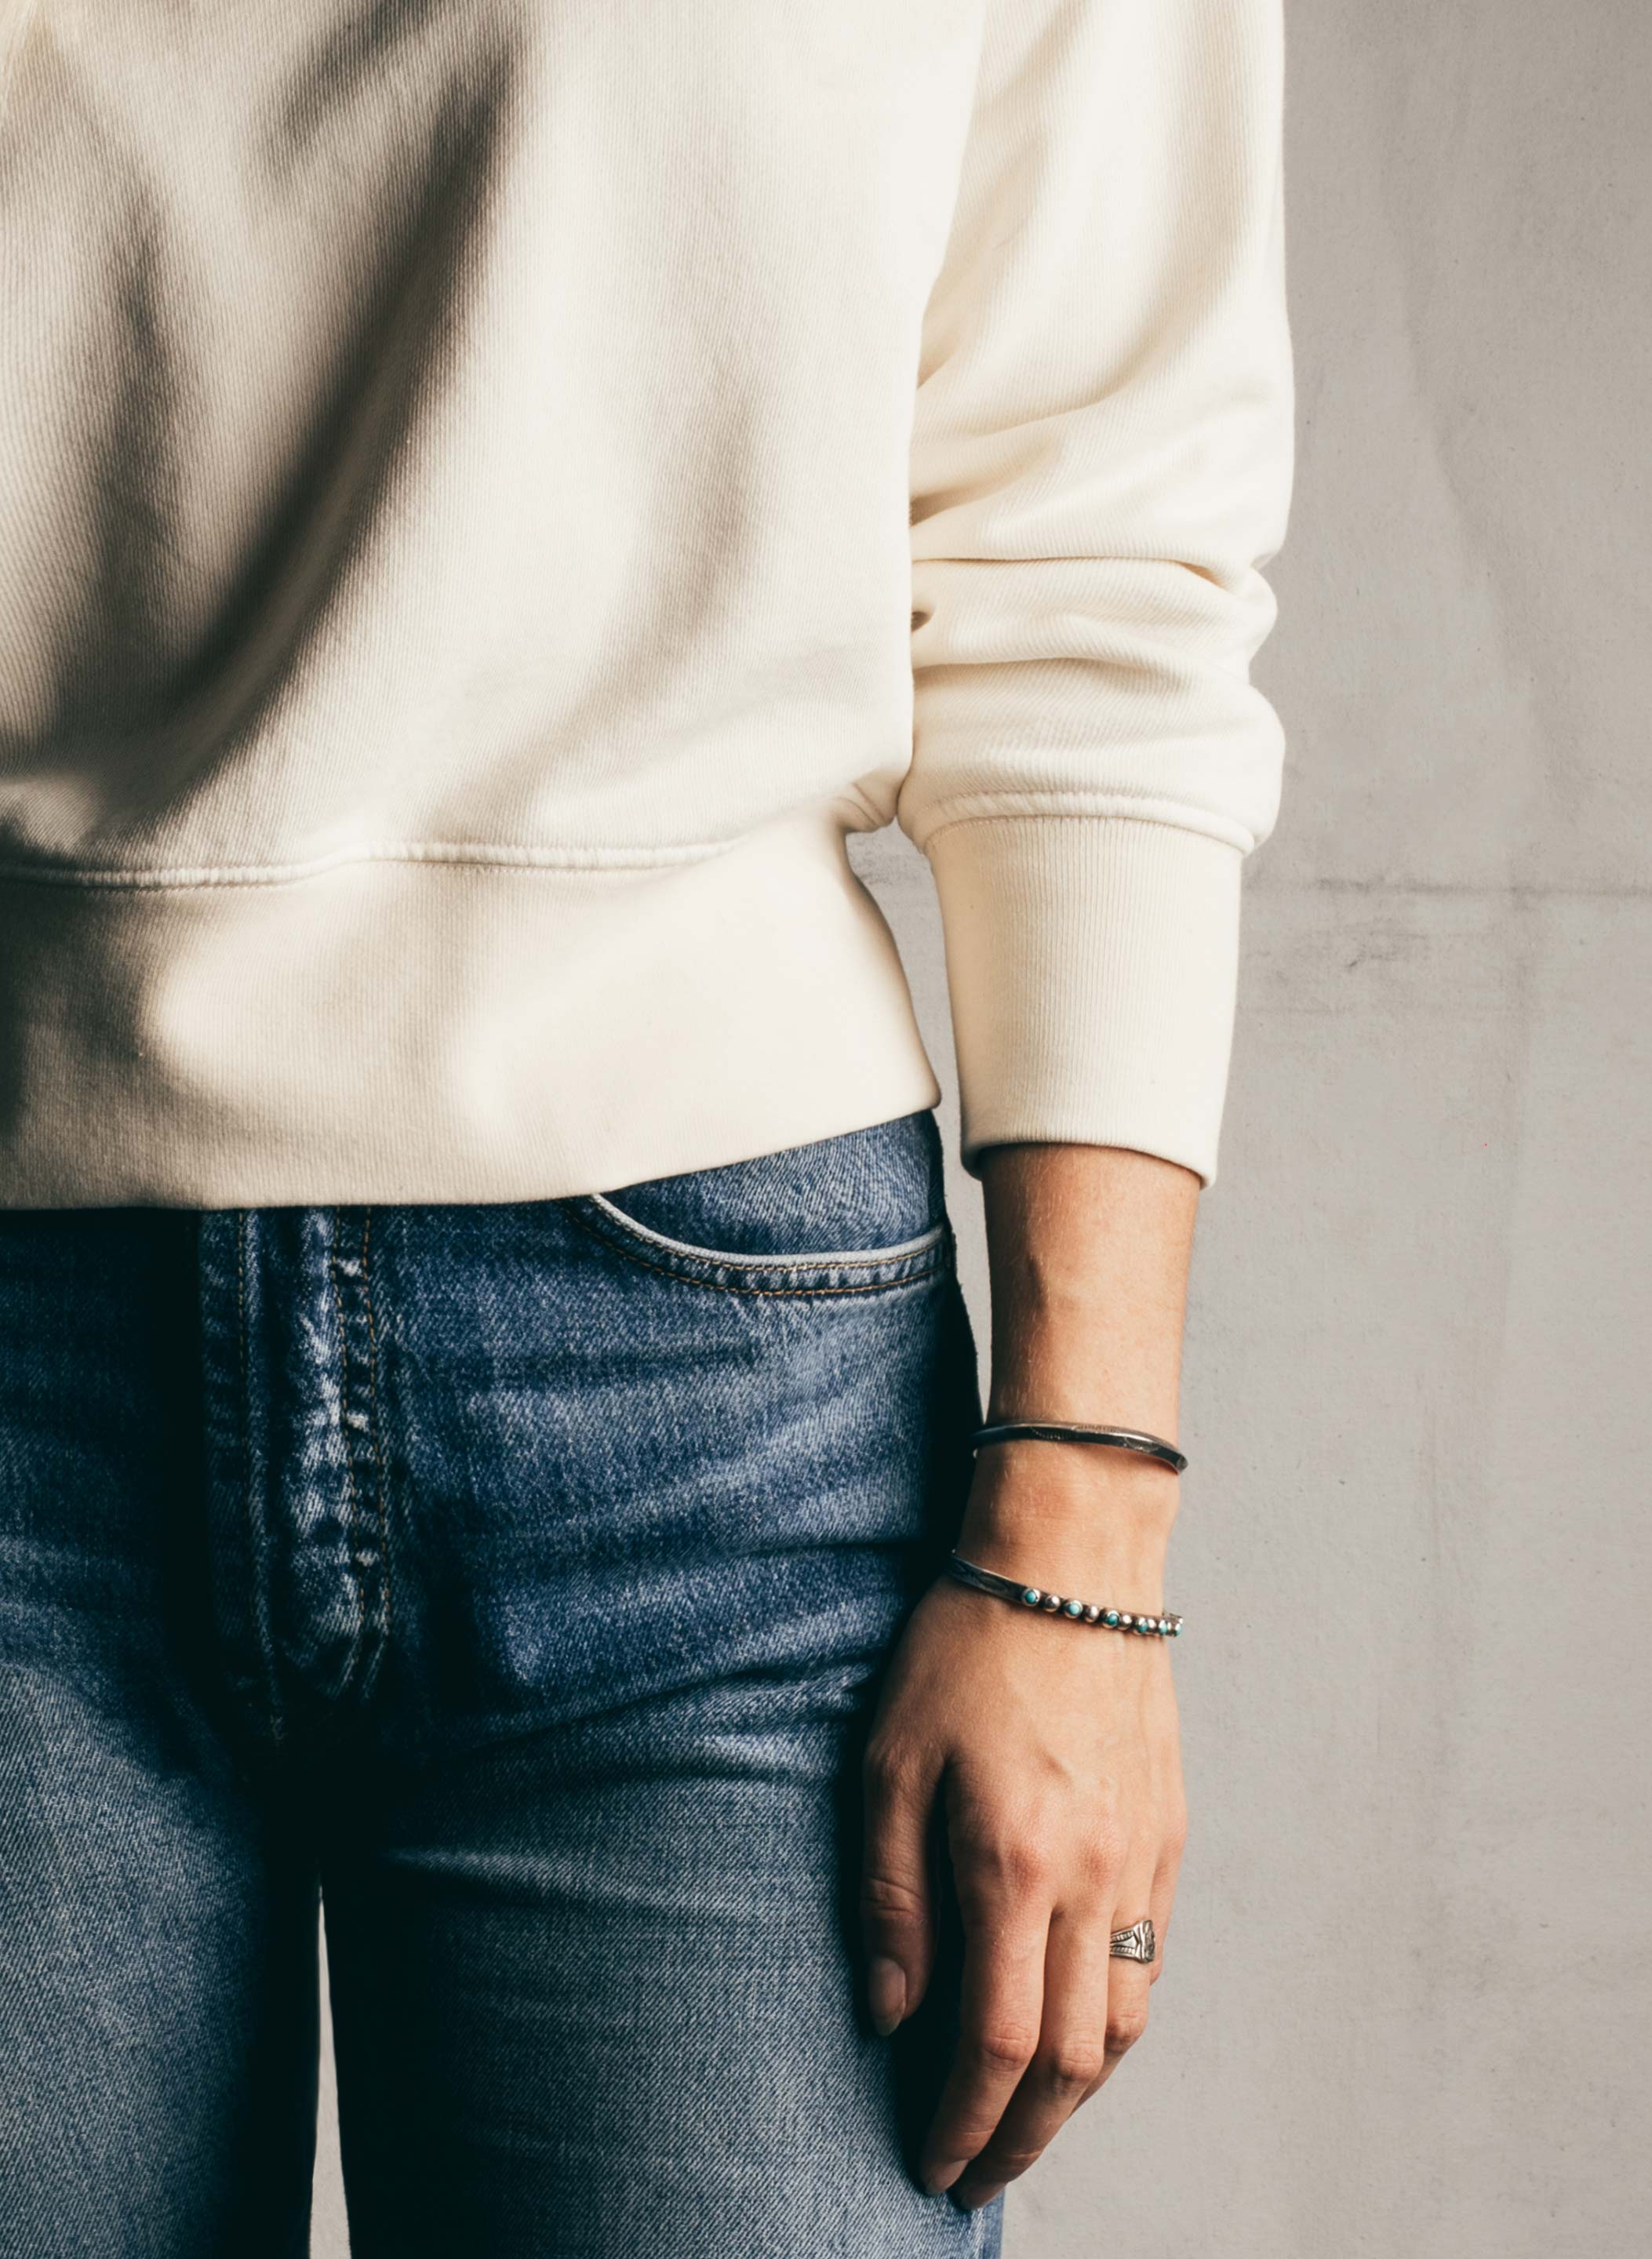 imogene + willie - lina sweatshirt in natural